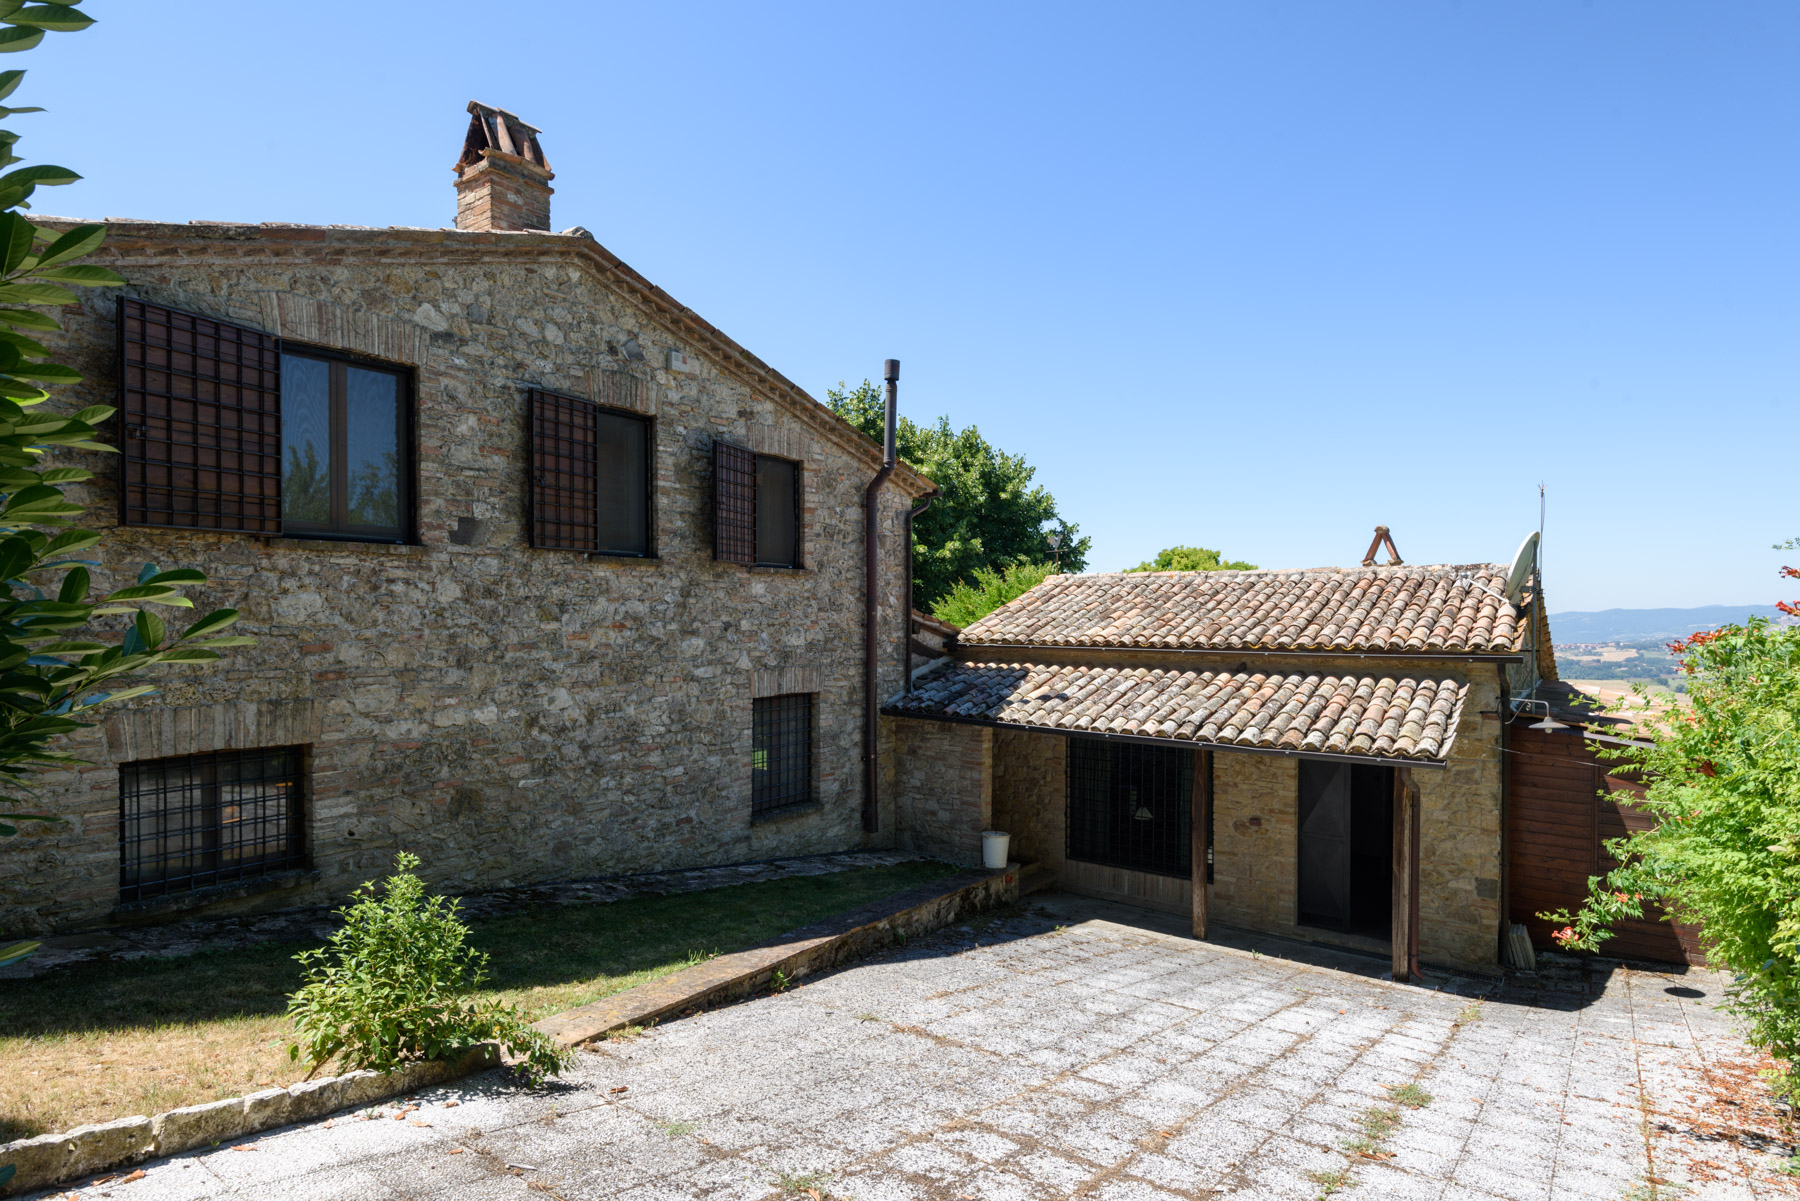 Additional photo for property listing at Charming house overlooking the town of Todi Todi, Perugia Italy